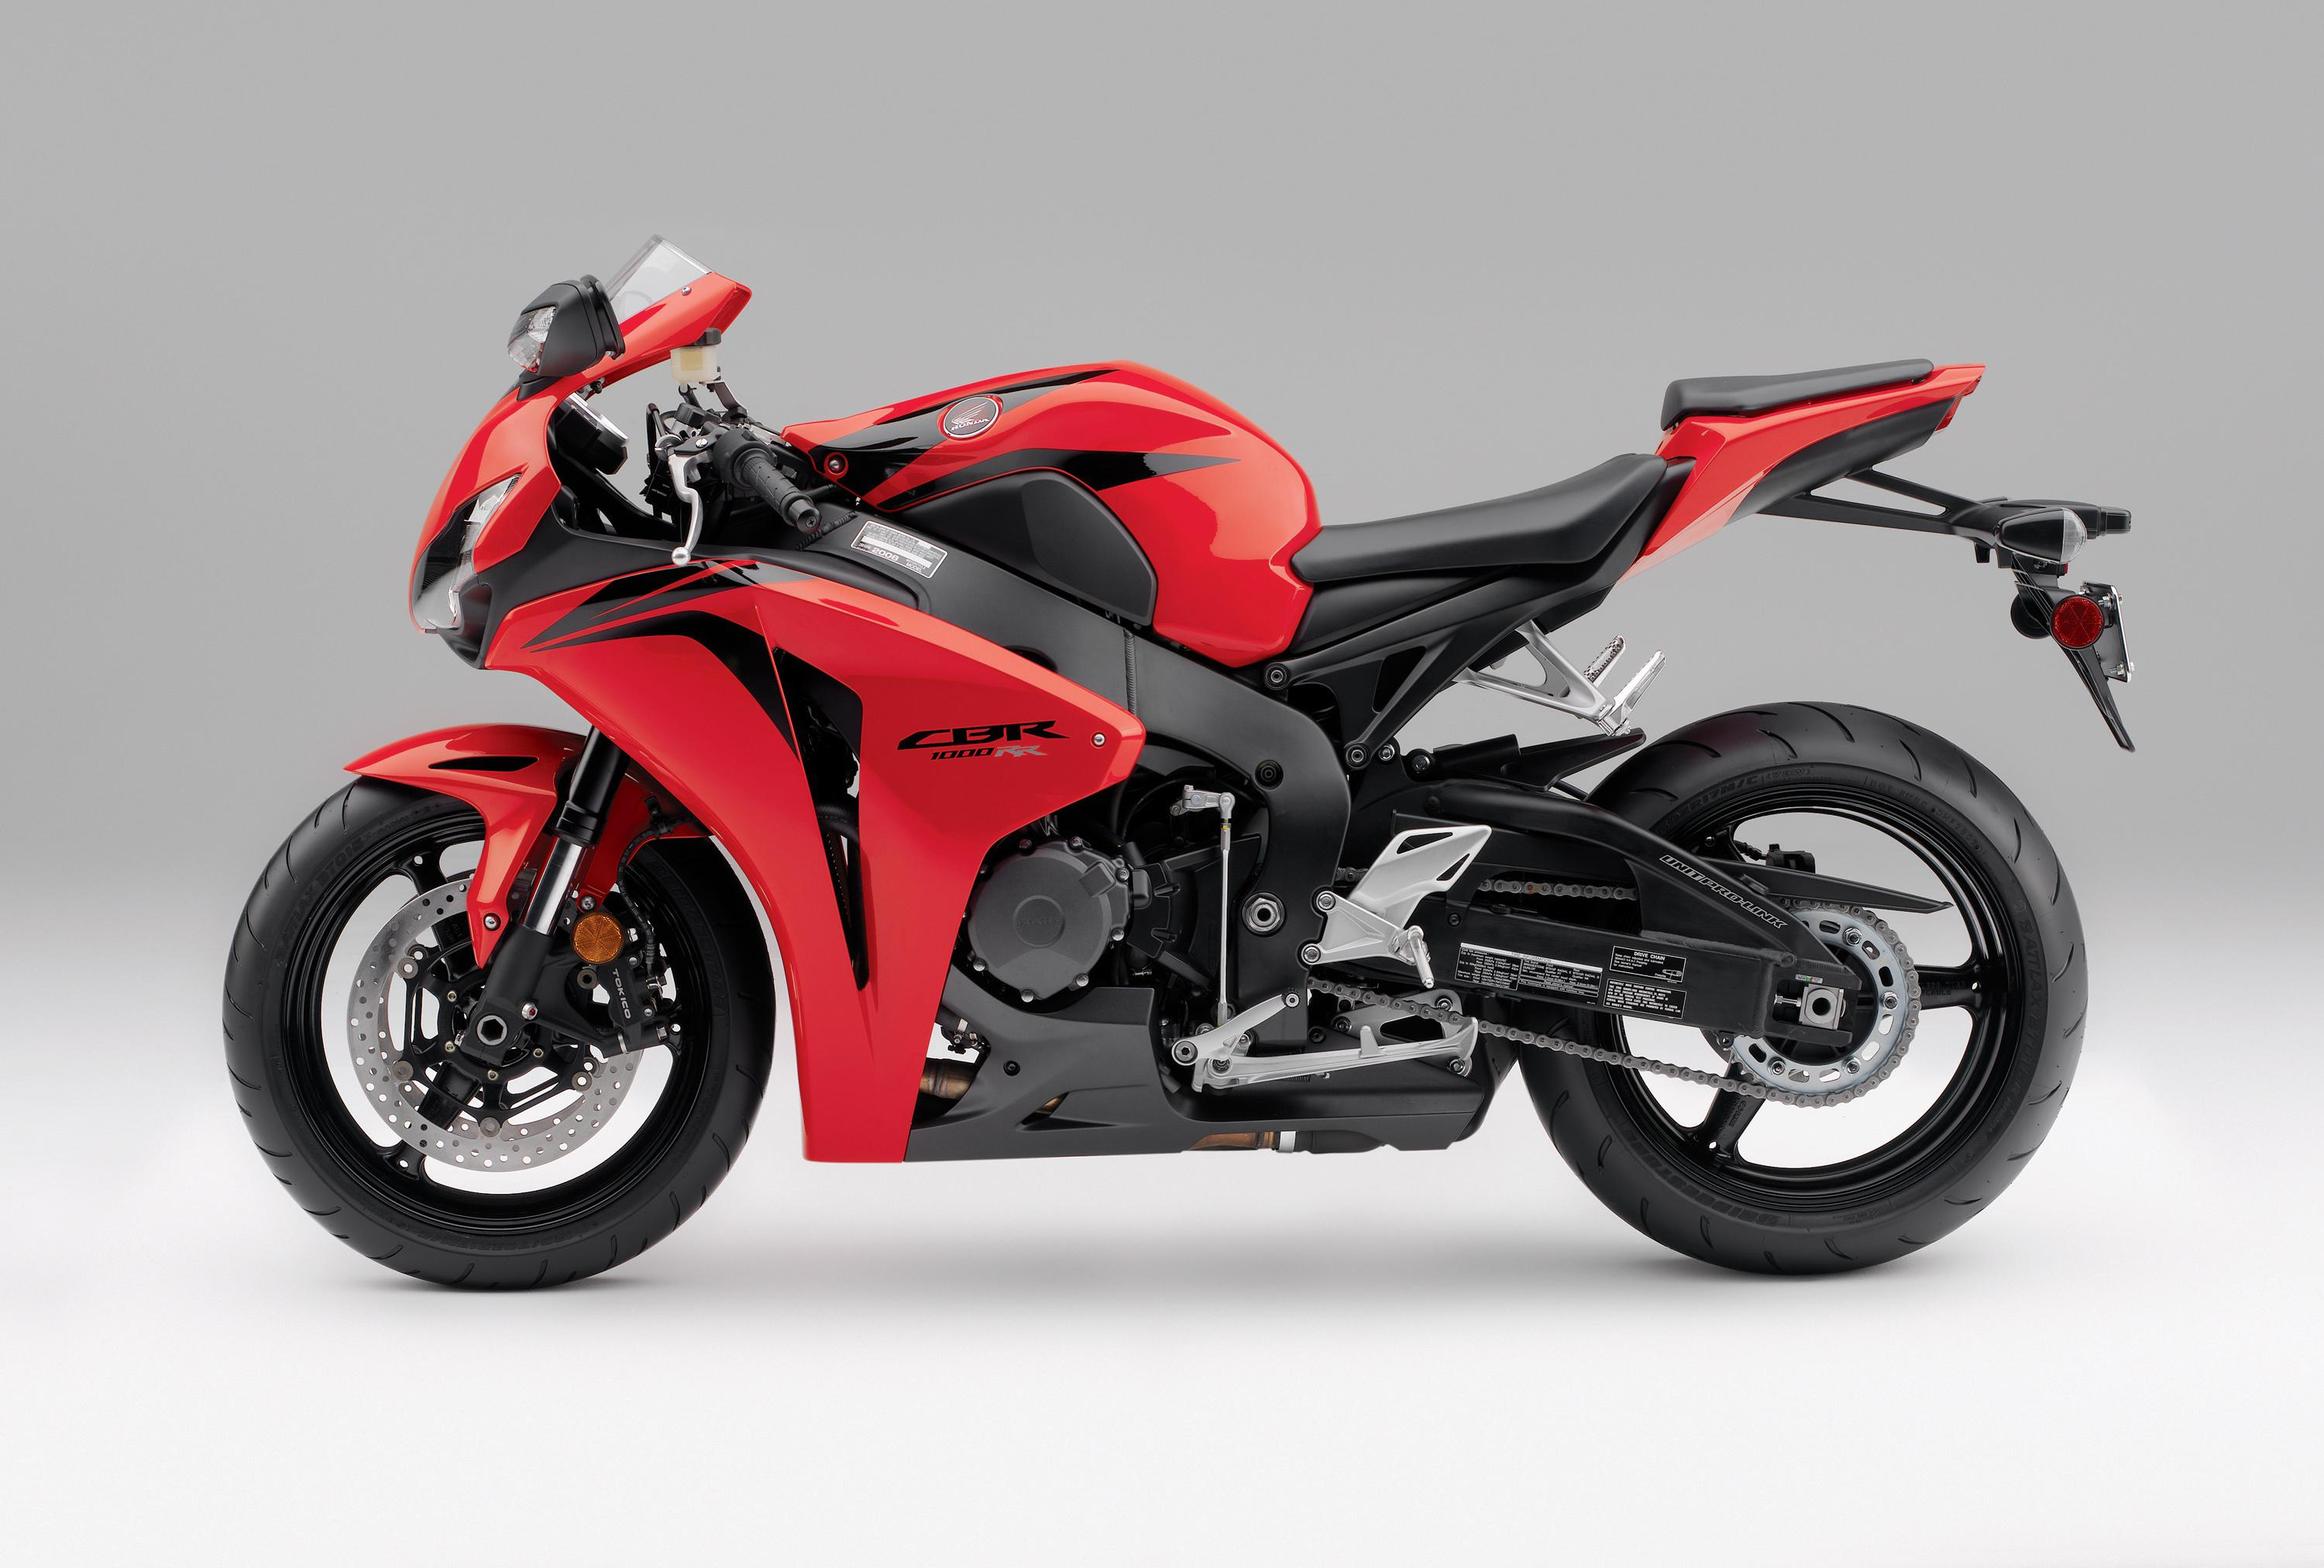 2008 Honda CBR1000RR | Top Speed